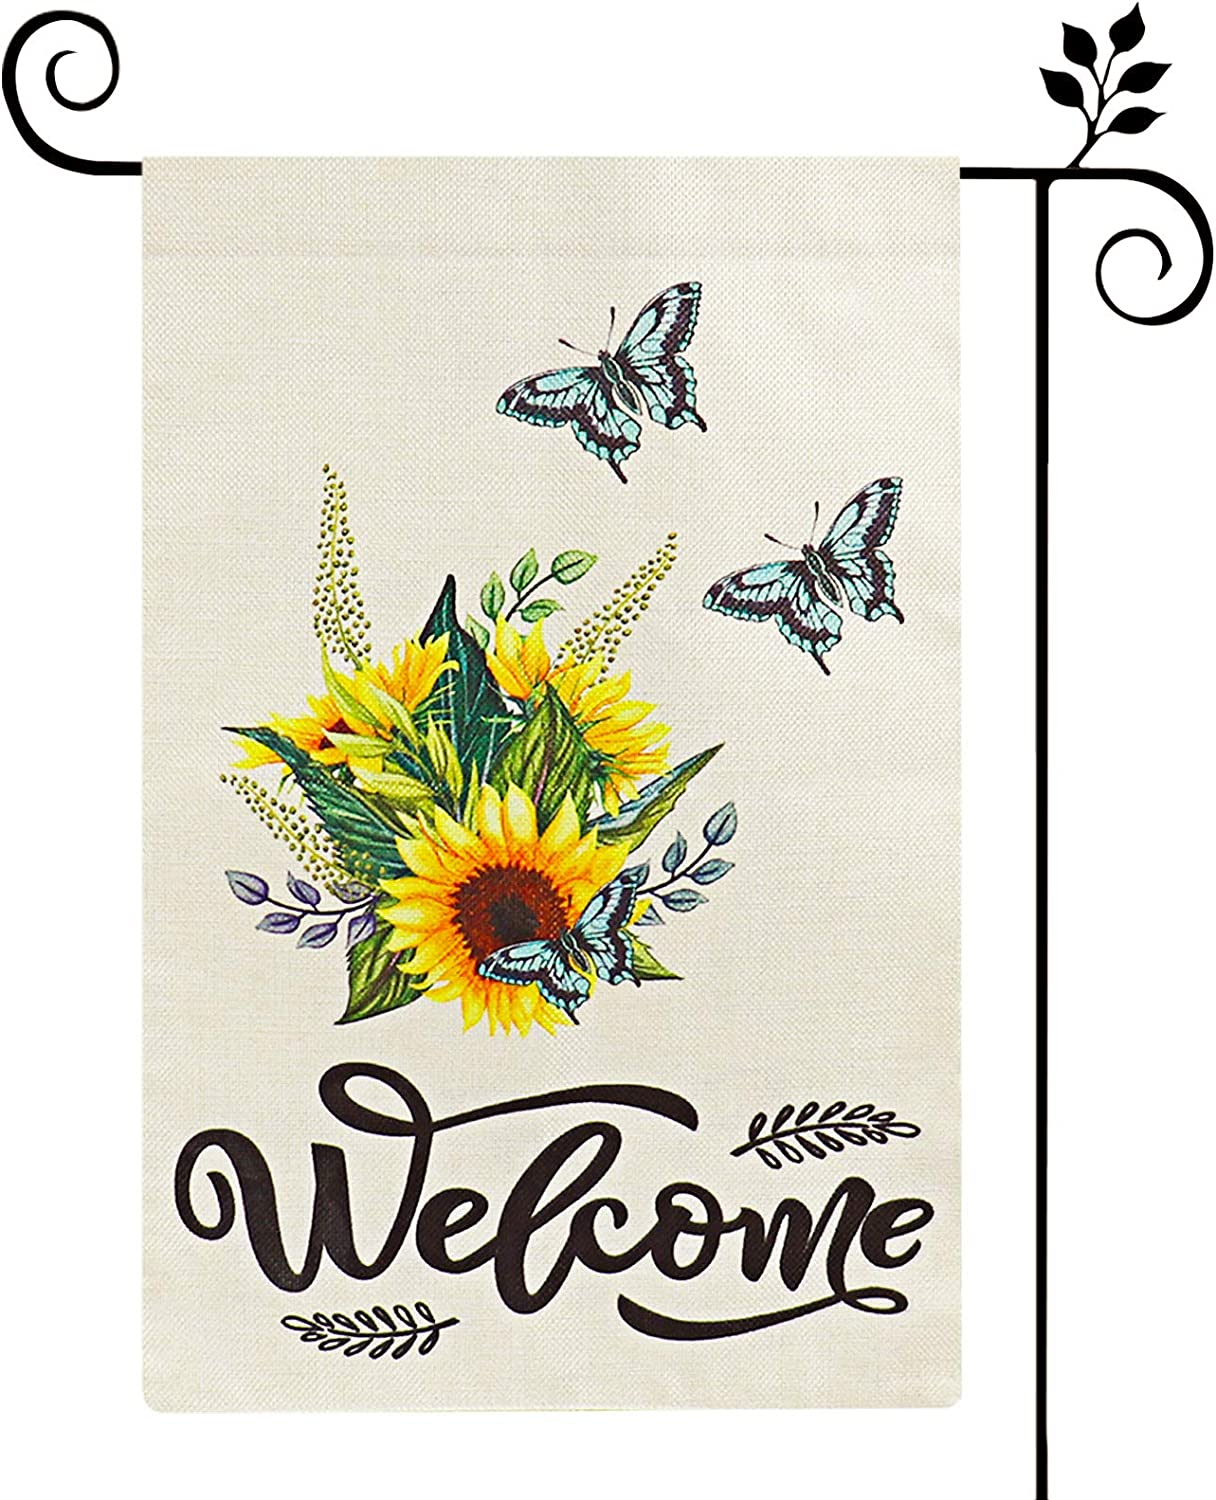 SEMNOZ Welcome Garden Flag, Double Sided Watercolor Burlap Summer Garden Flag W/Butterfly & Sunflower Decor, Spring Yard Flag for Home Outside 12x18